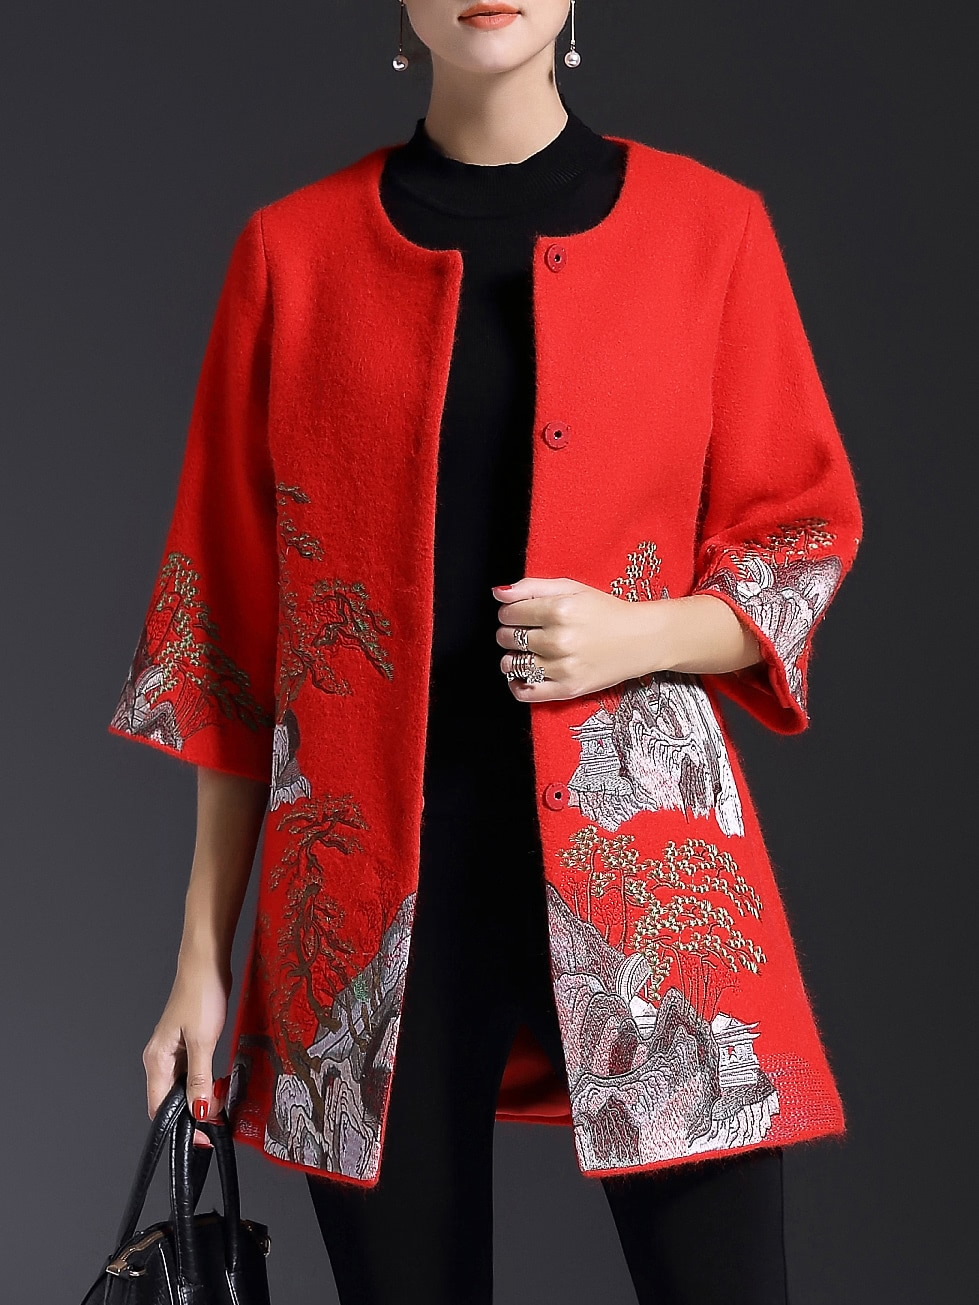 Red Crew Neck Embroidered Pockets Coat coat161117619